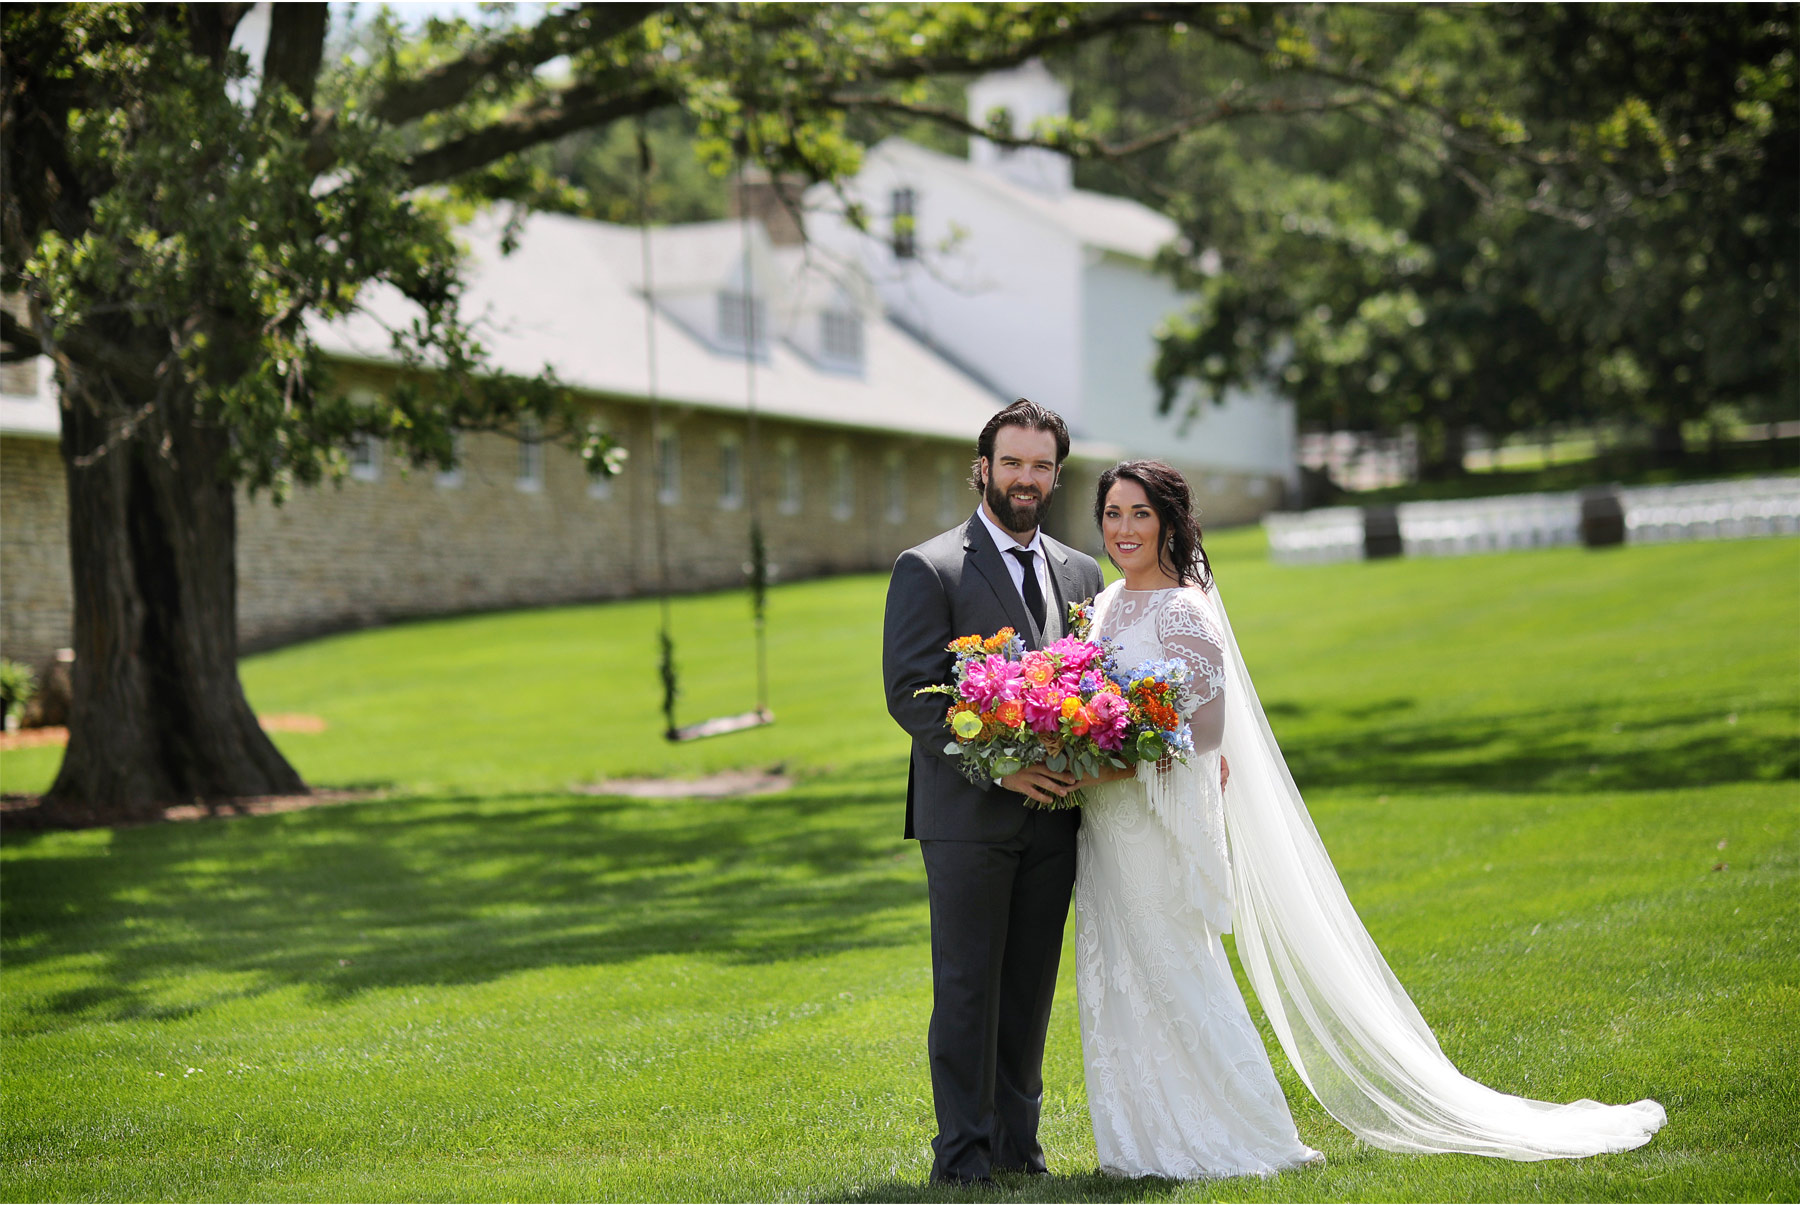 09-Vick-Photography-Rochester-Minnesota-Mayowood-Stone-Barn-Country-Wedding-Summer-Bride-Groom-Lizz-and-Brady.jpg